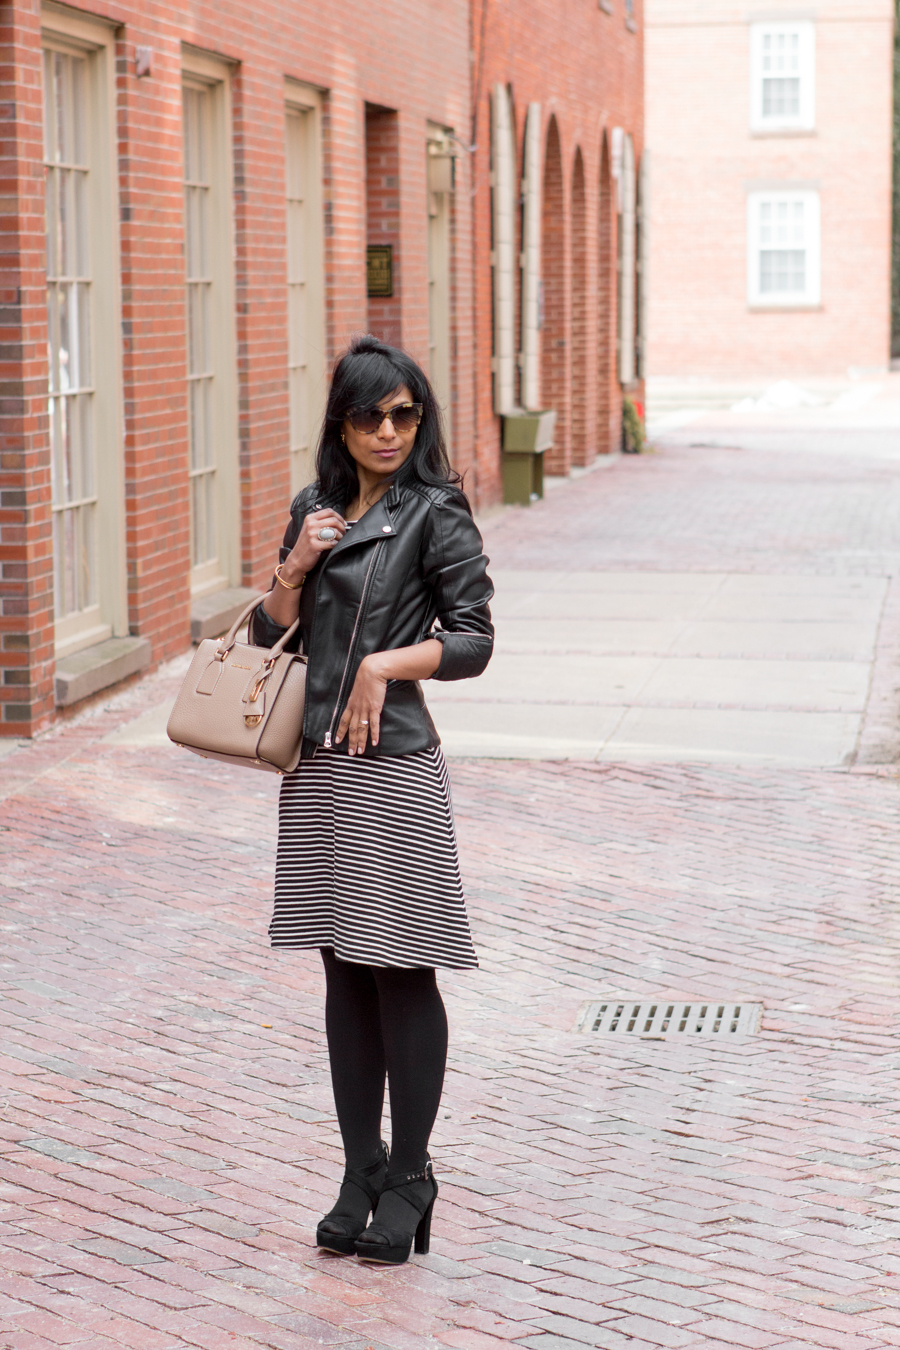 moto jacket, biker jacket, striped dress, all season dress, elongate your legs, platform shoes, look taller, look leaner